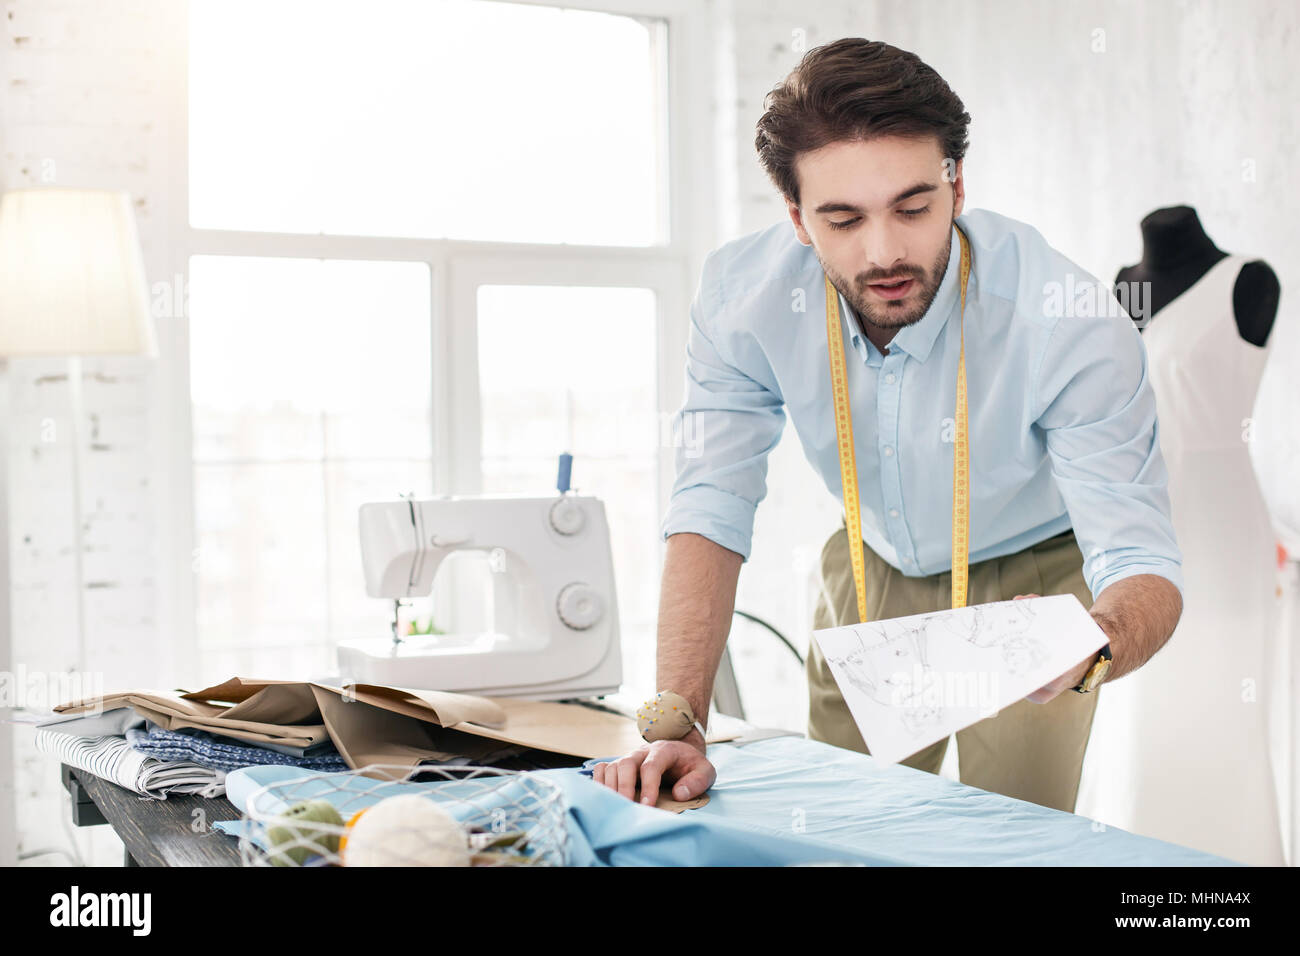 Serious professional tailor holding his sketches - Stock Image